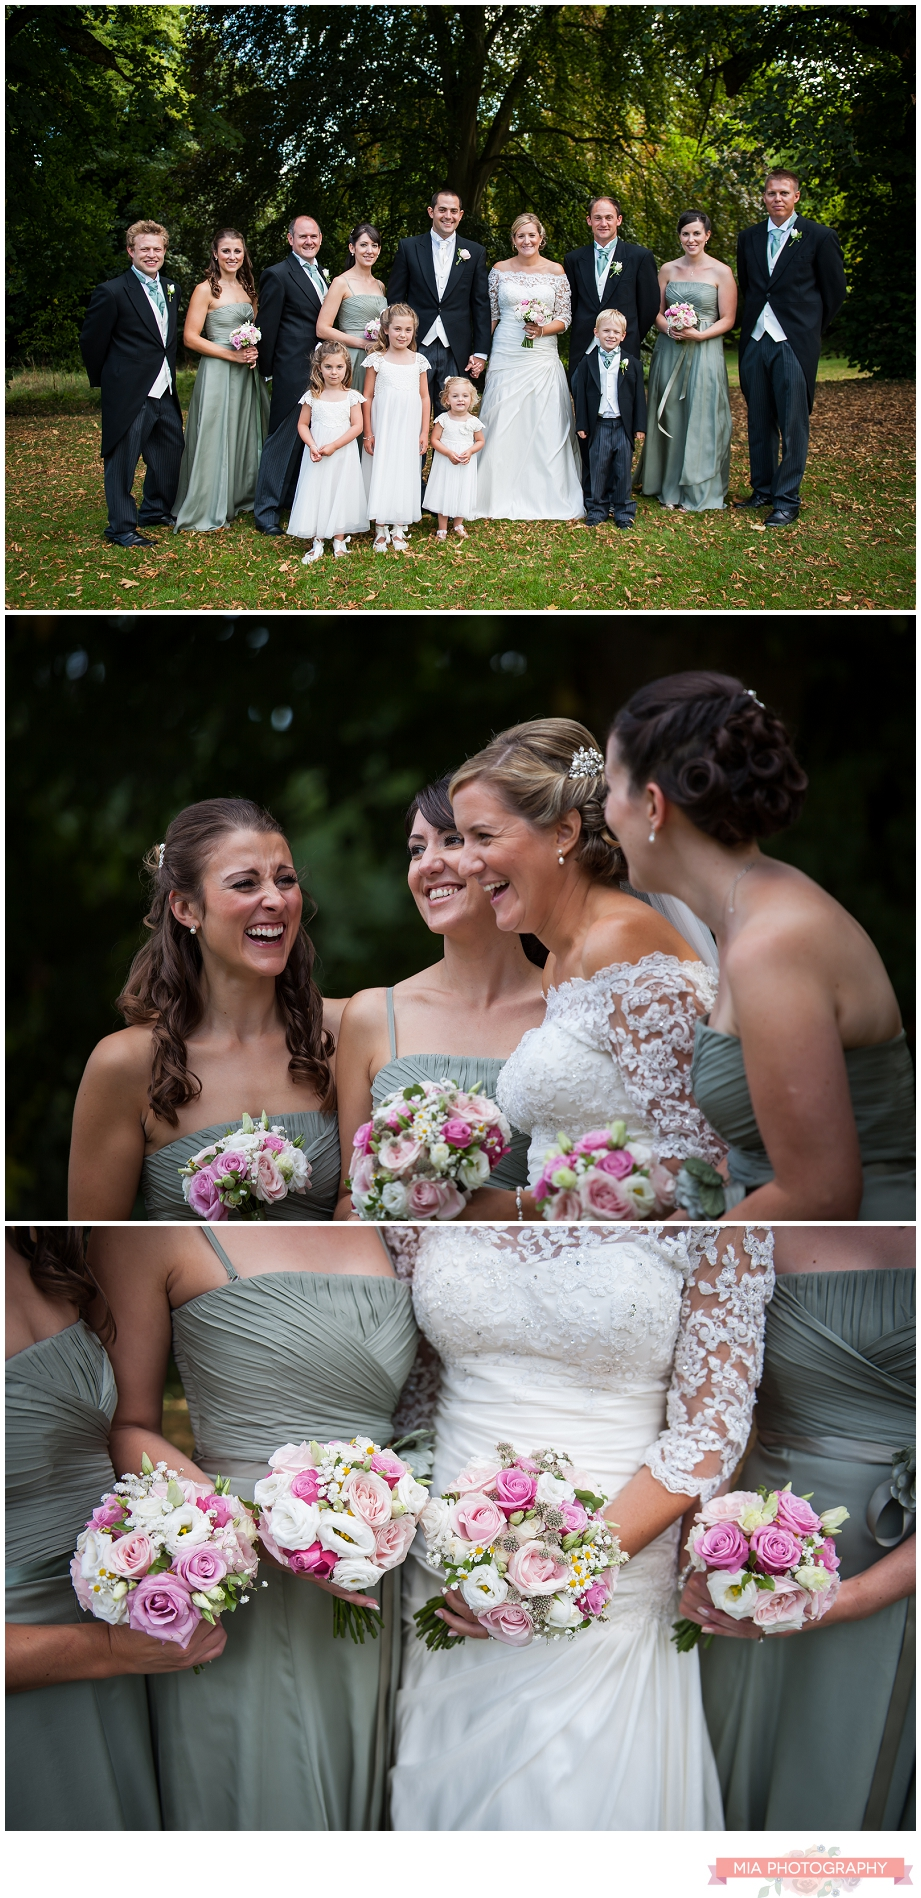 Bridal party wedding photography in hampshire